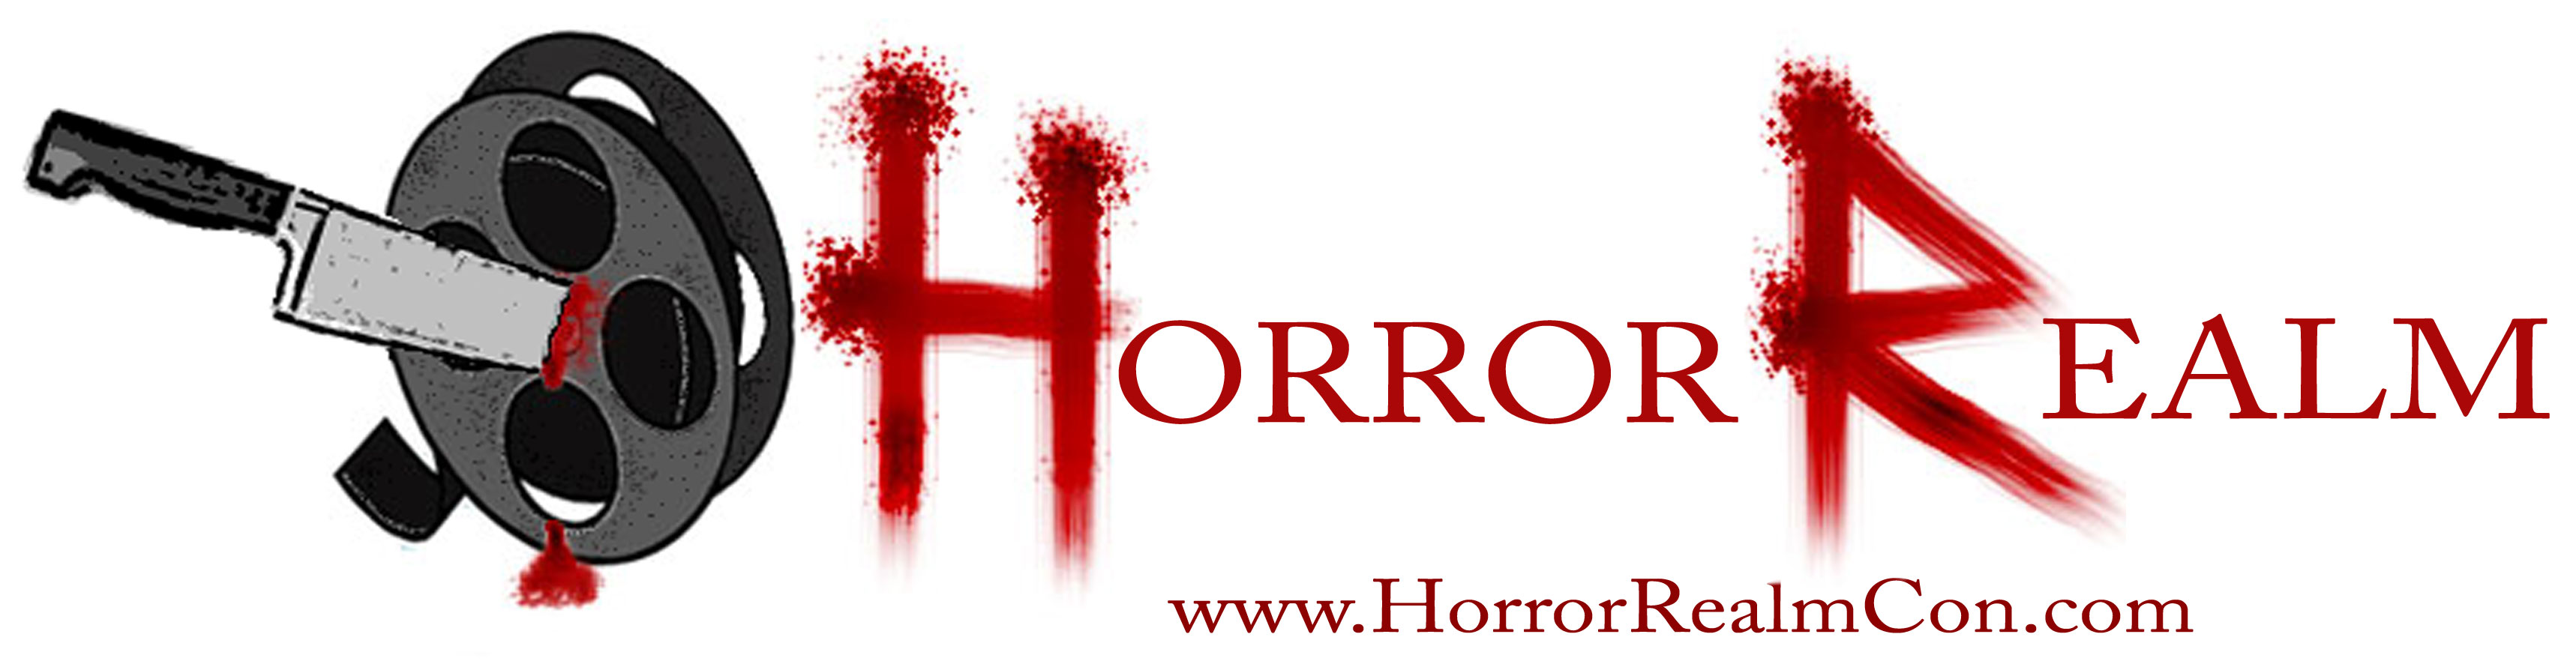 Tickets for Horror Realm 2016 Spring Break Massacre in Pittsburgh from ShowClix